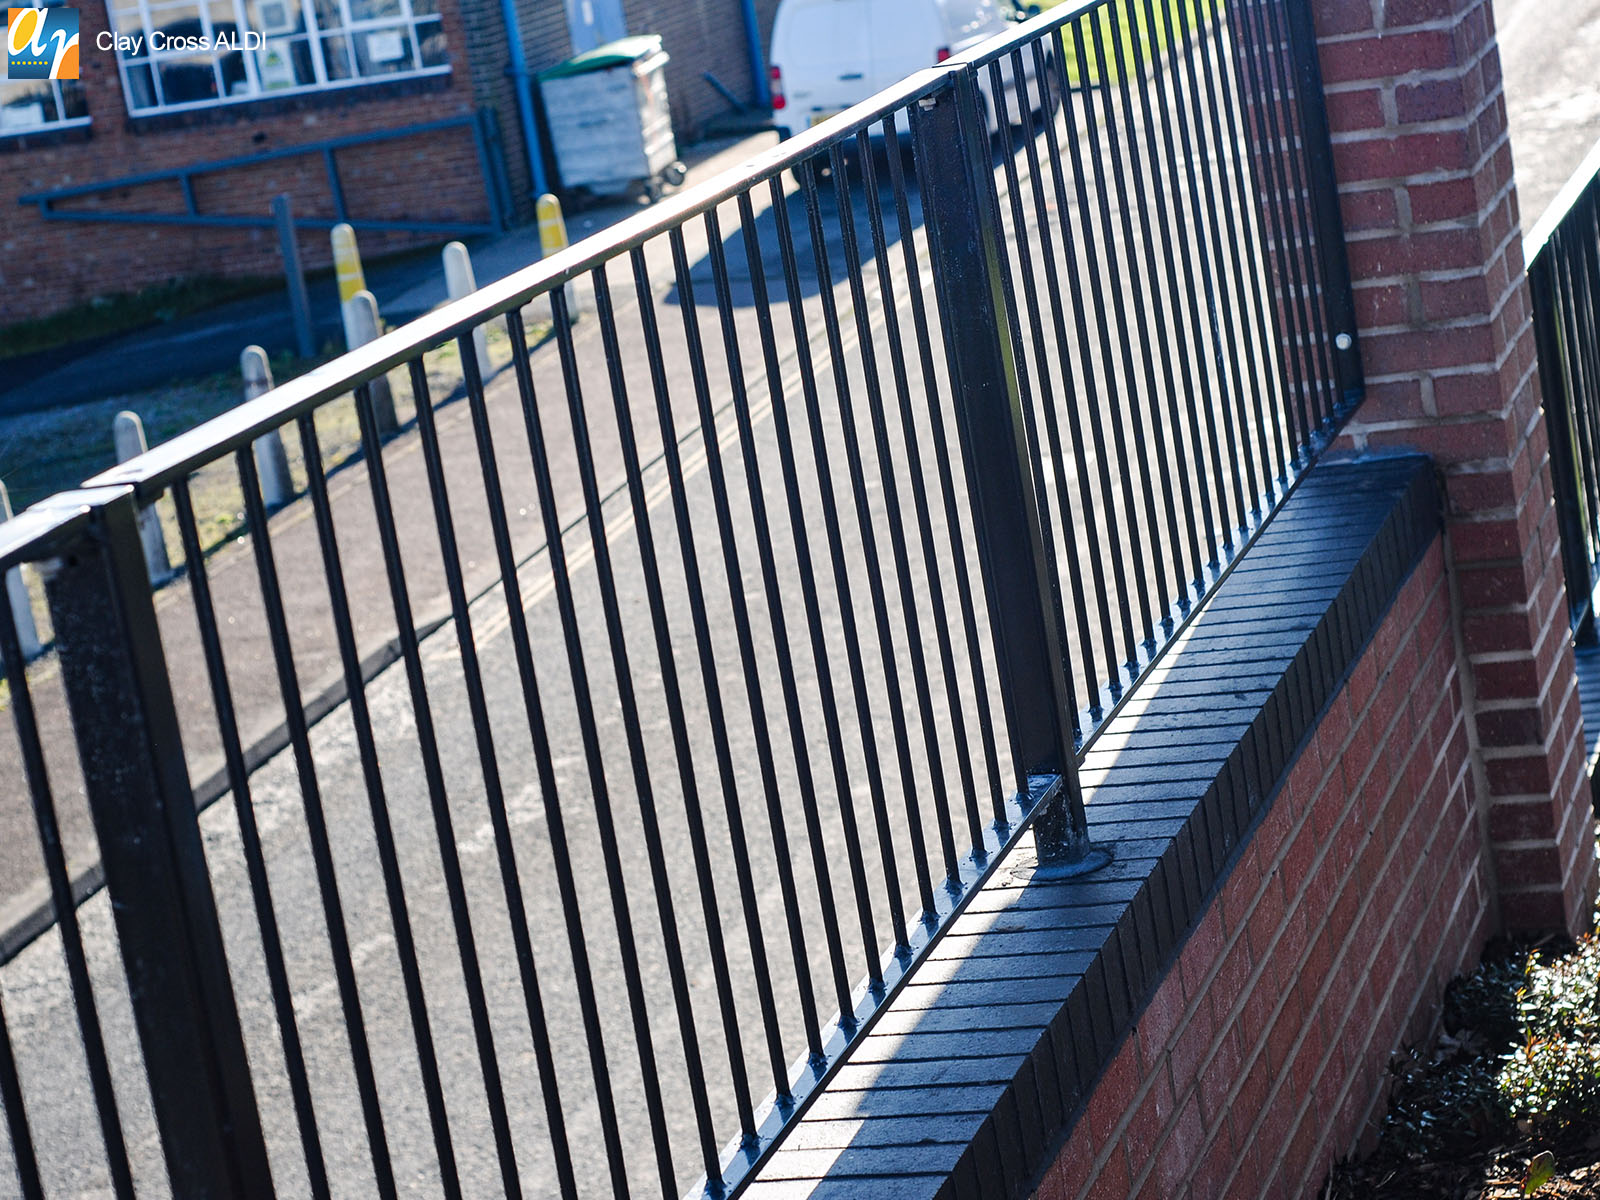 Clay Cross ALDI Flat top metal railings